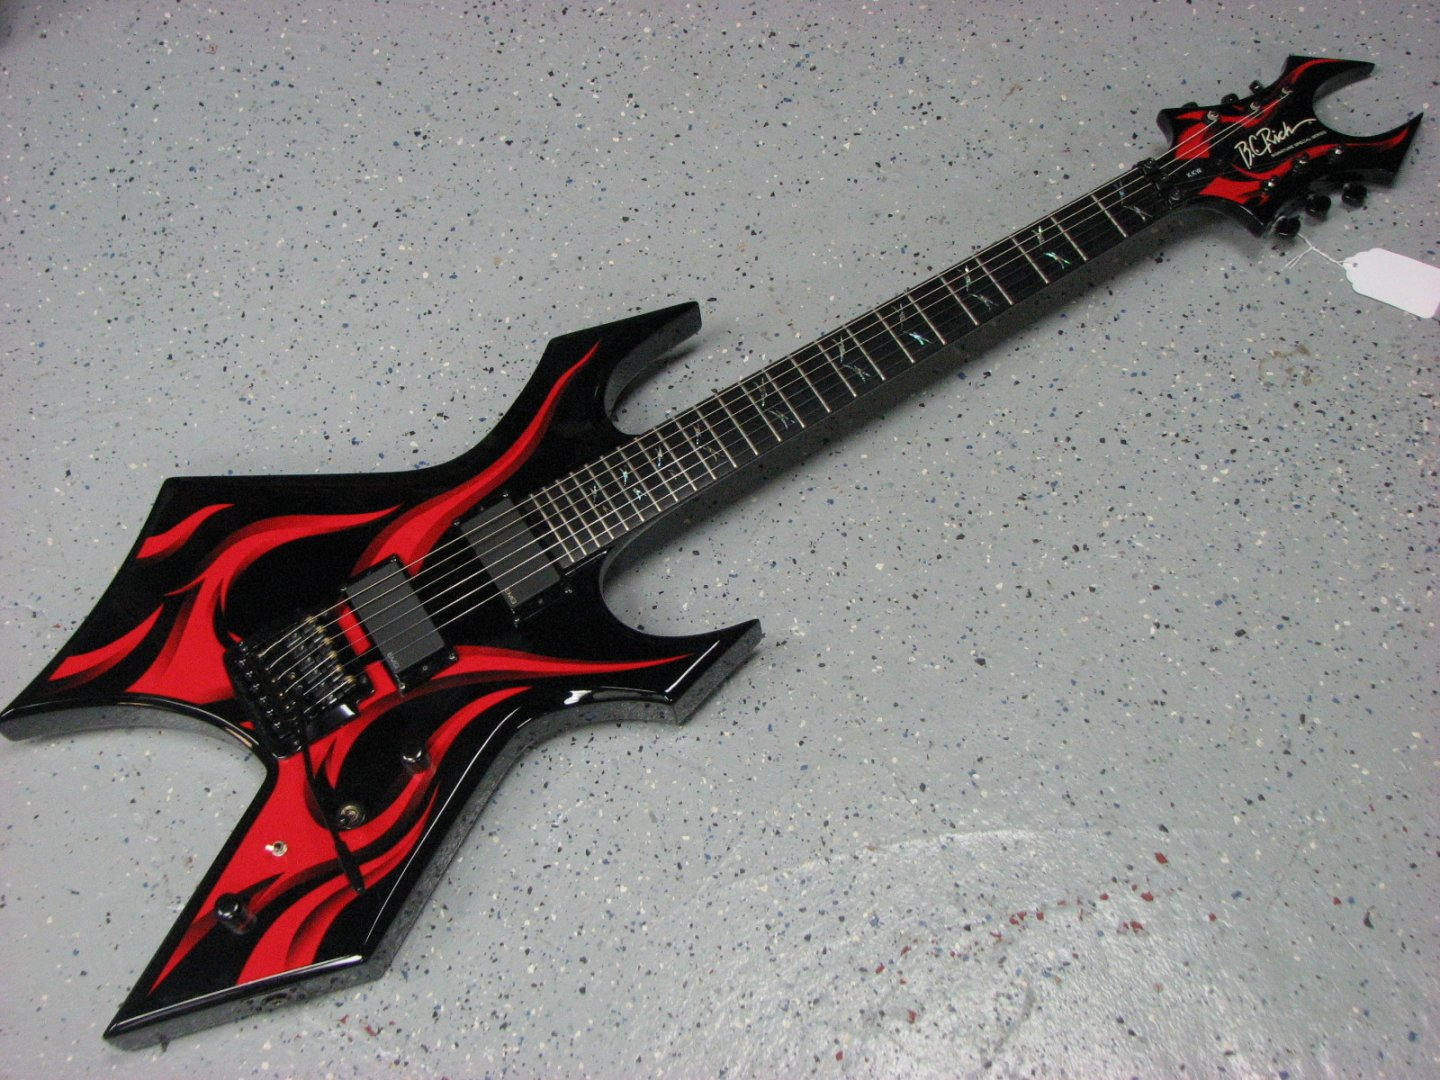 b-c-rich-kerry-king-wartribe-onyx-w-red-fire-graphic-625672.jpg